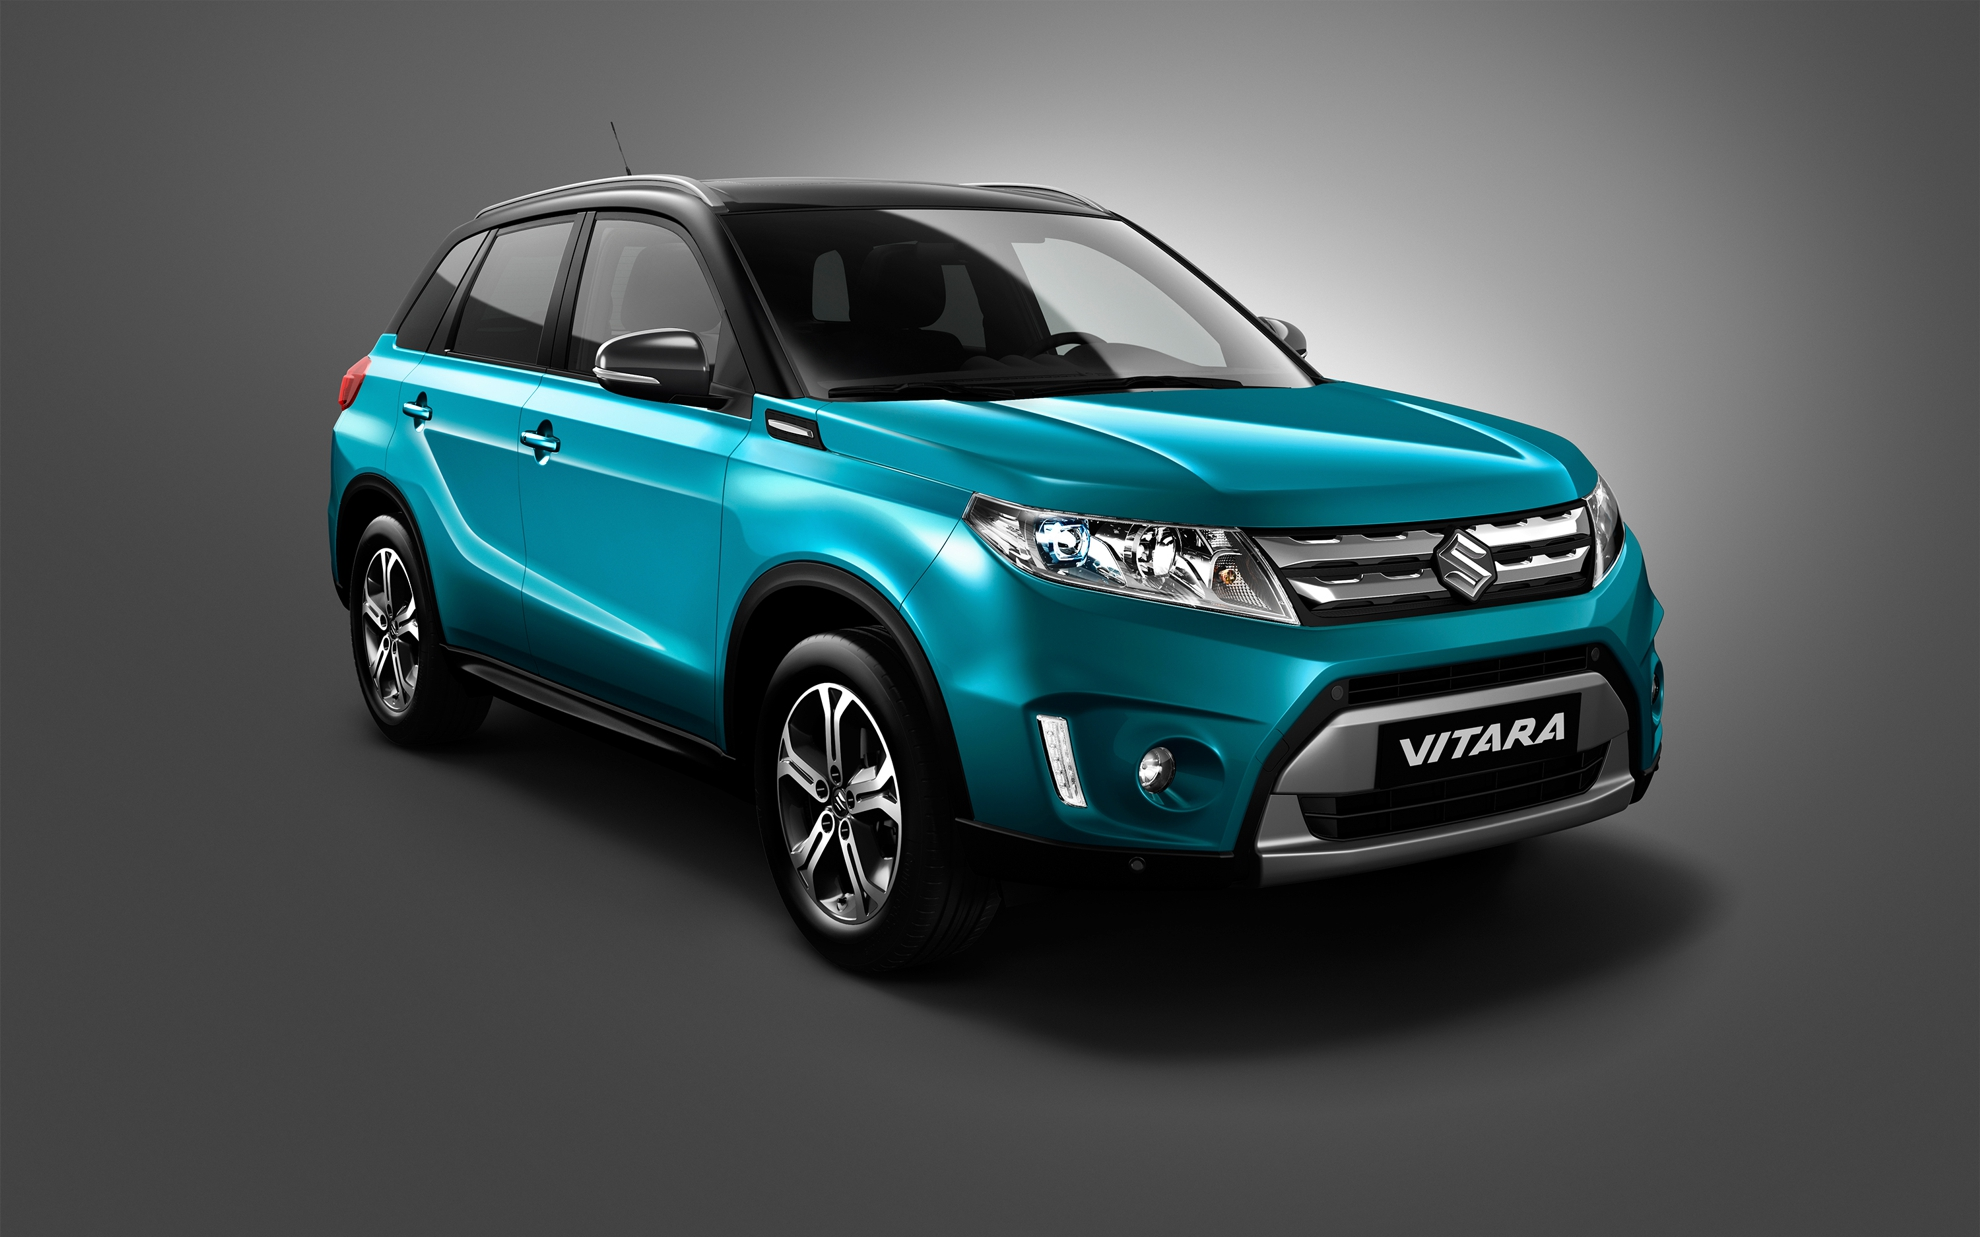 Suzuki To Unveil Vitara At The Paris Motor Show 2014 2000 2 0 Engine Corporation Will Hold Global Premiere Of Its All New Small And Stylish Suv Model